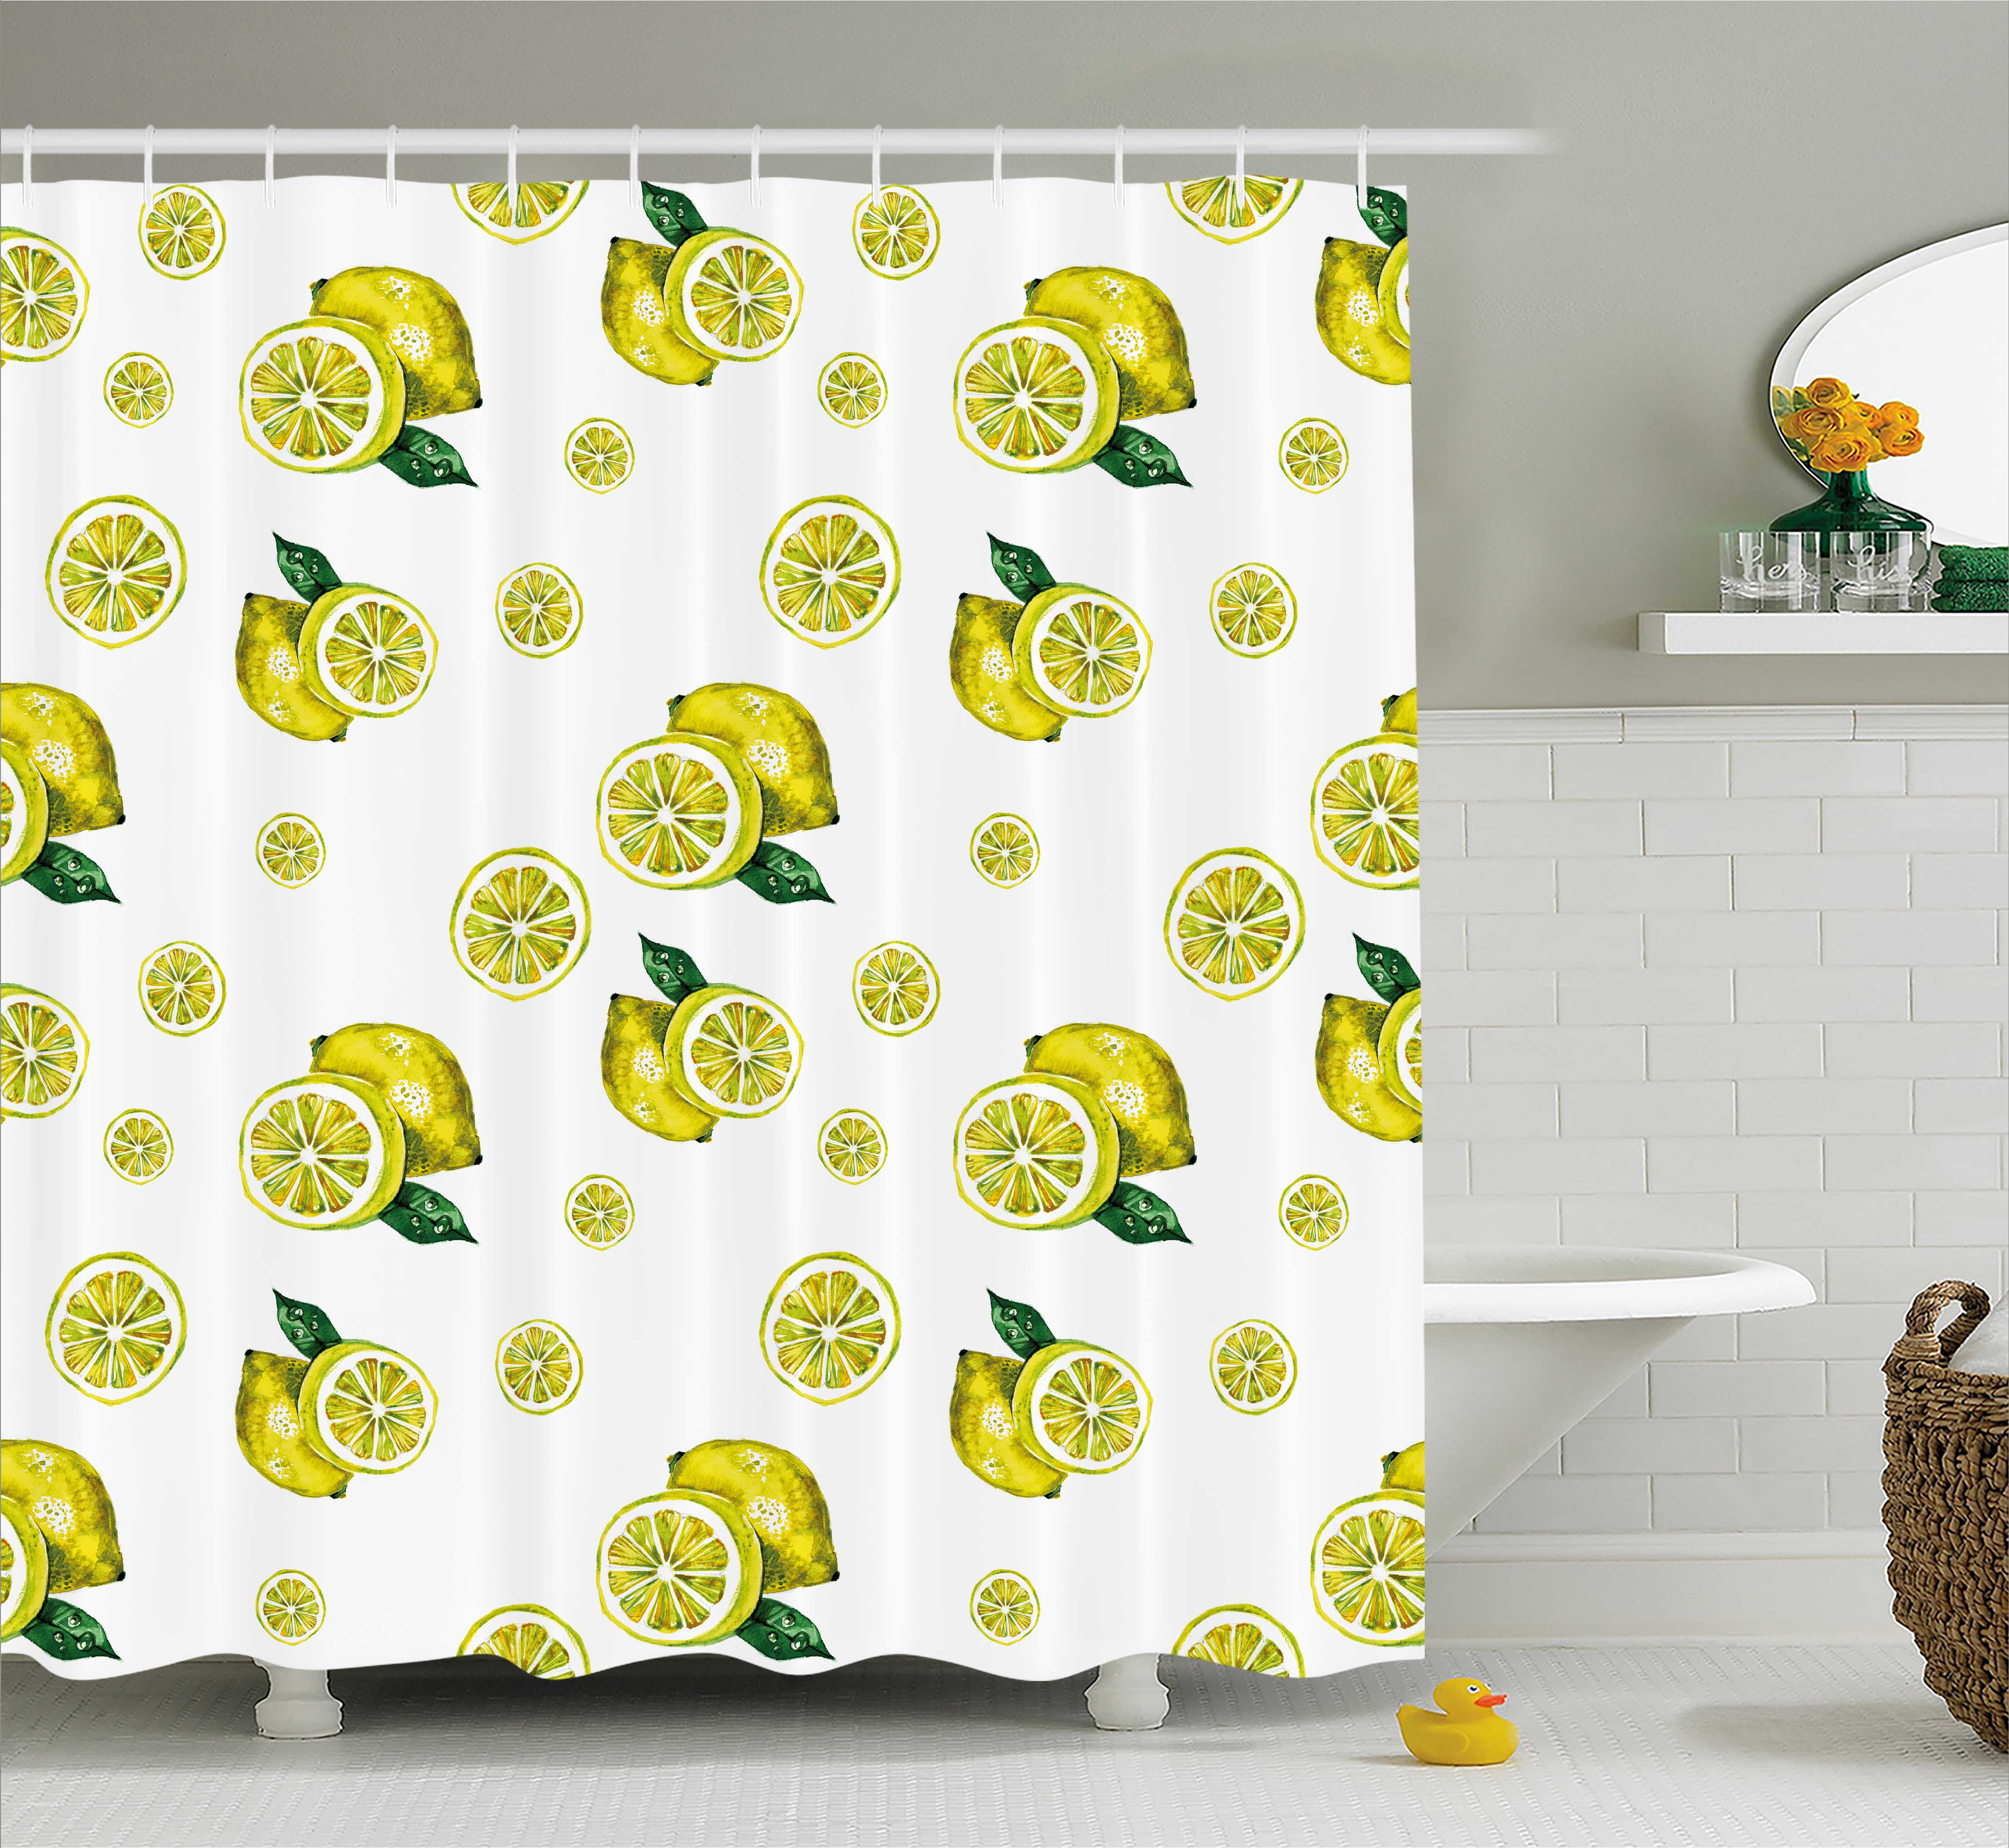 Modern Shower Curtain, Lemon Figures with Slices and Leaves Summer Season Fresh Fruit Watercolor, Fabric Bathroom Set with Hooks, 69W X 70L Inches, Yellow Hunter Green, by Ambesonne